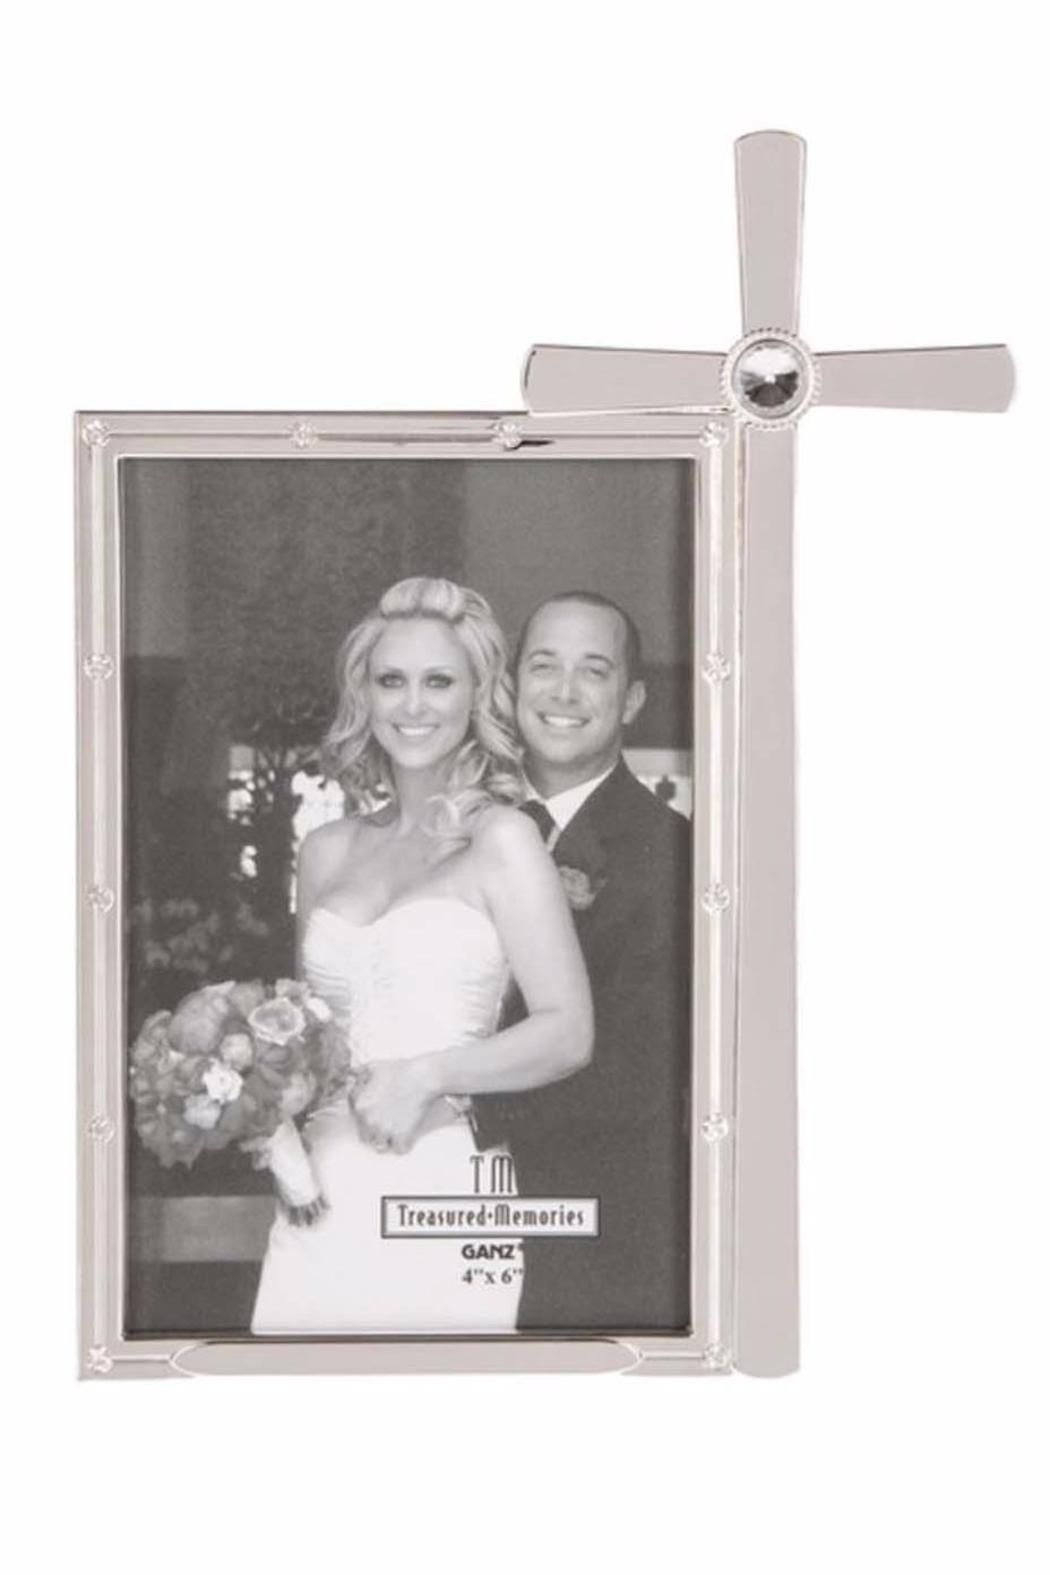 "Silver cross frame that Holds 4"" x 6"" photo.    Dimensions: 6"" W. x 8"" H.   Cross Wedding Frame by Ganz. Home & Gifts - Home Decor - Frames Alabama"